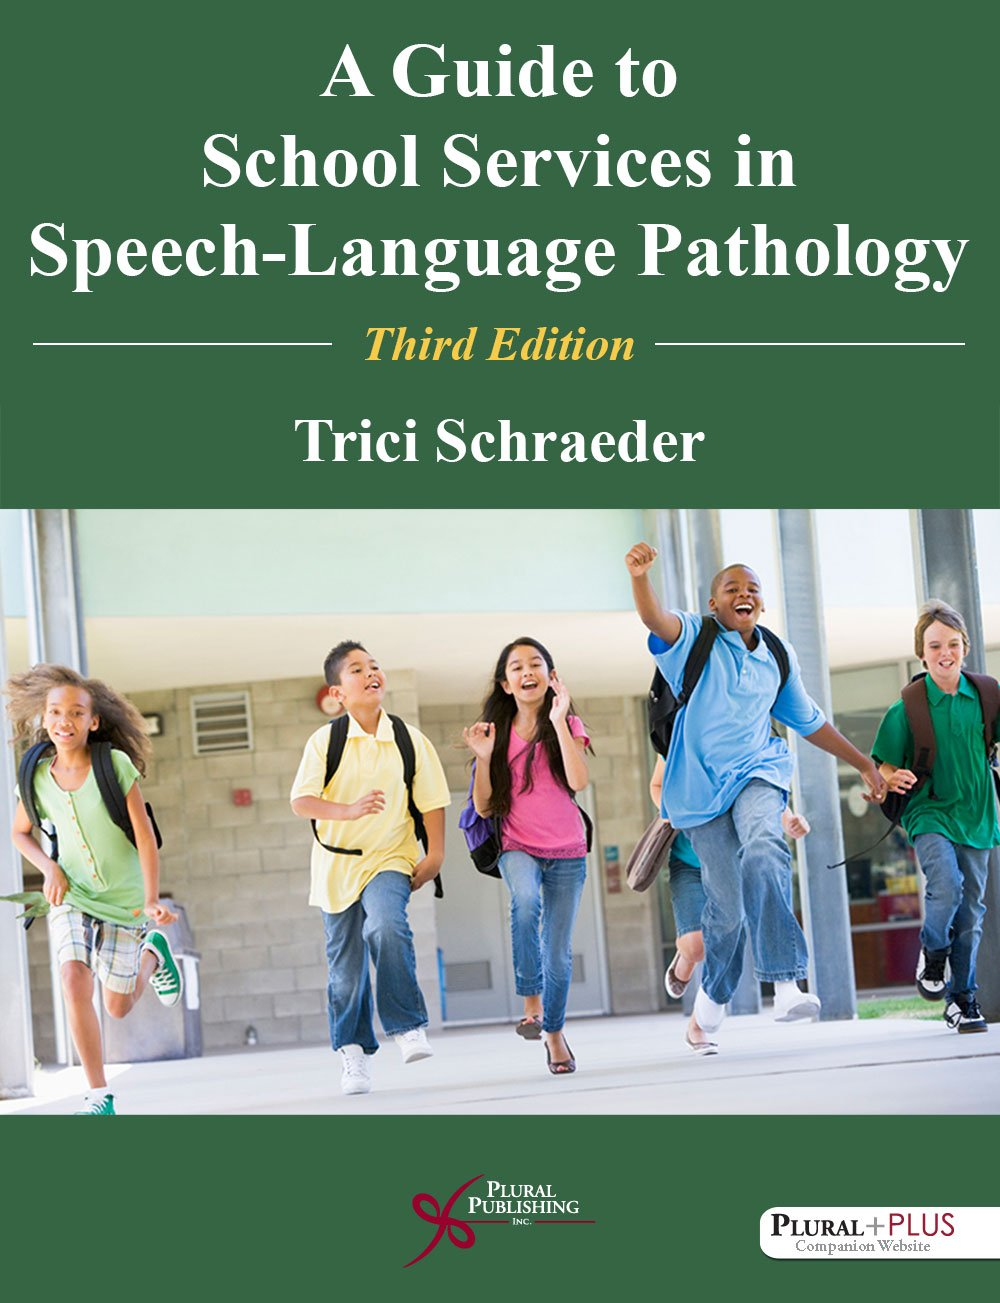 A Guide to School Services in Speech-Language Pathology, Third Edition